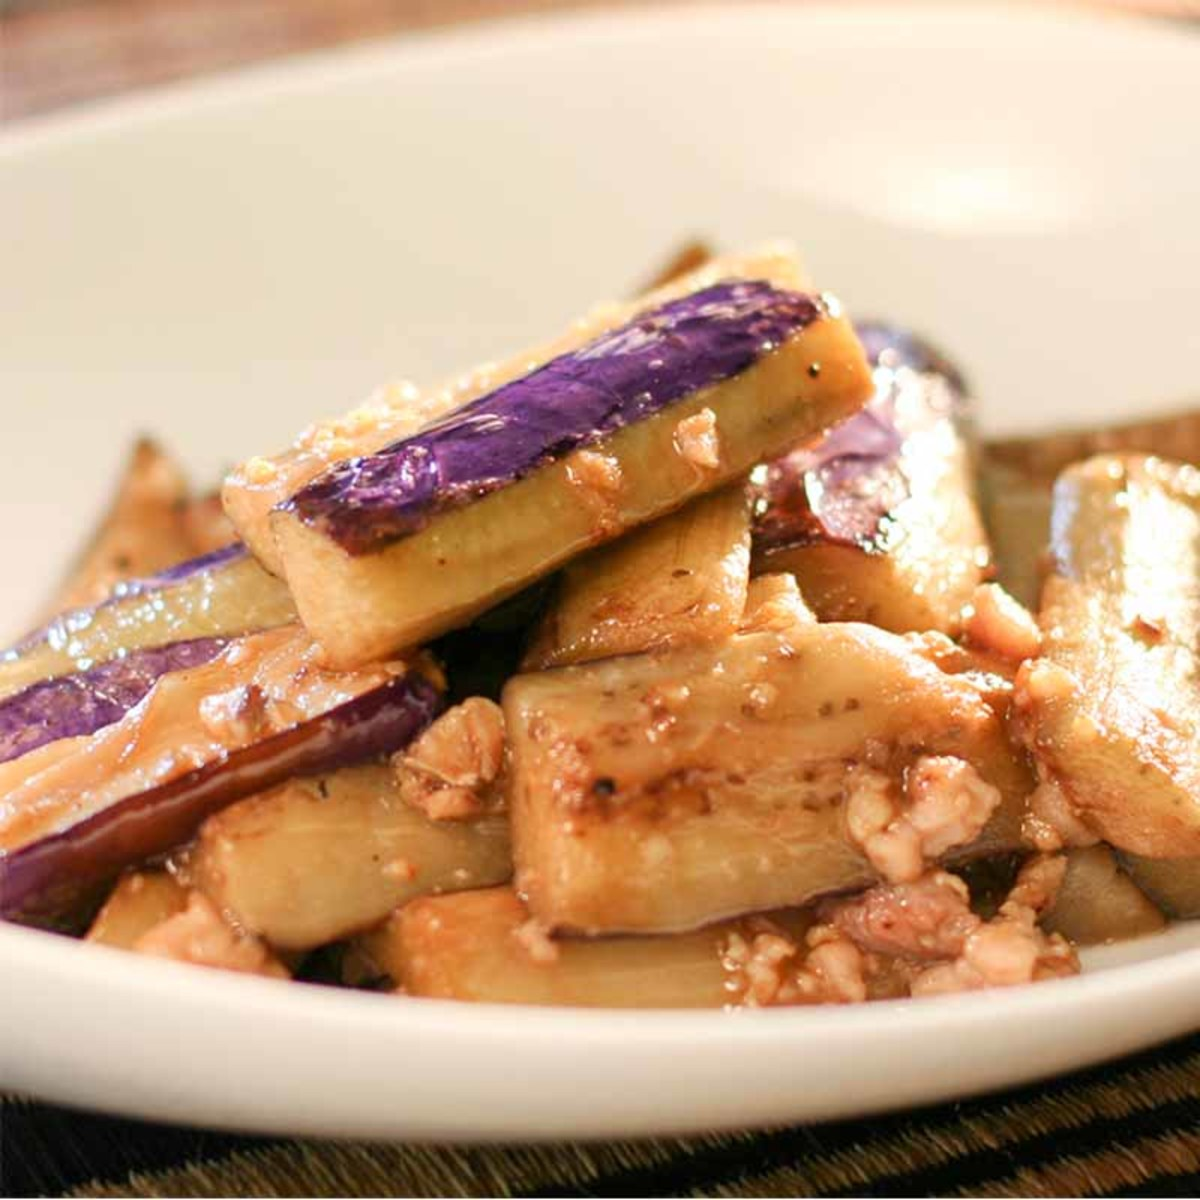 Spicy Eggplants with Minced Pork